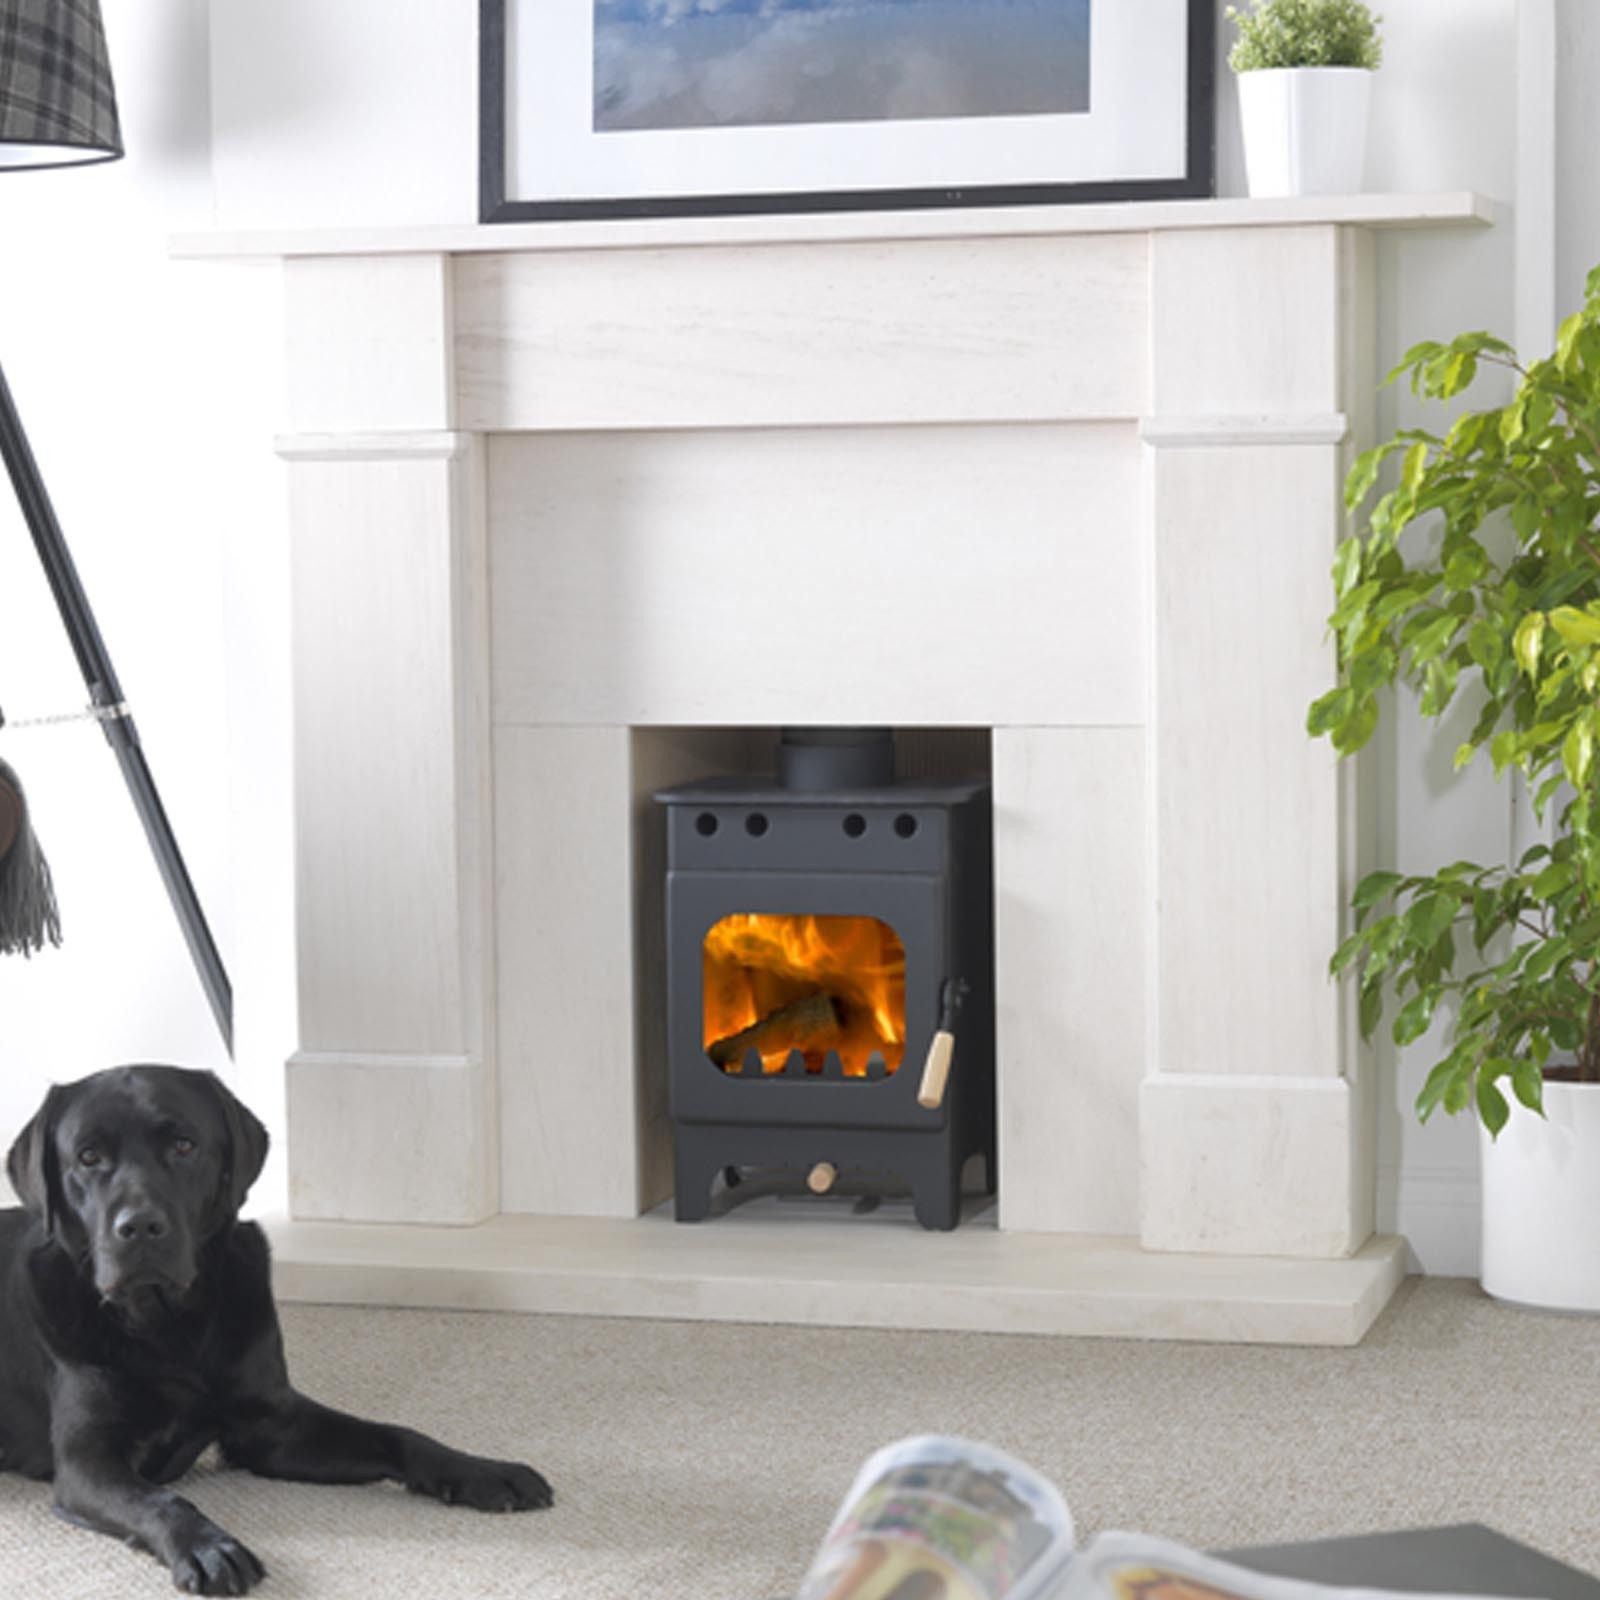 Burley Springdale 9103 A Particularly Efficient Stove